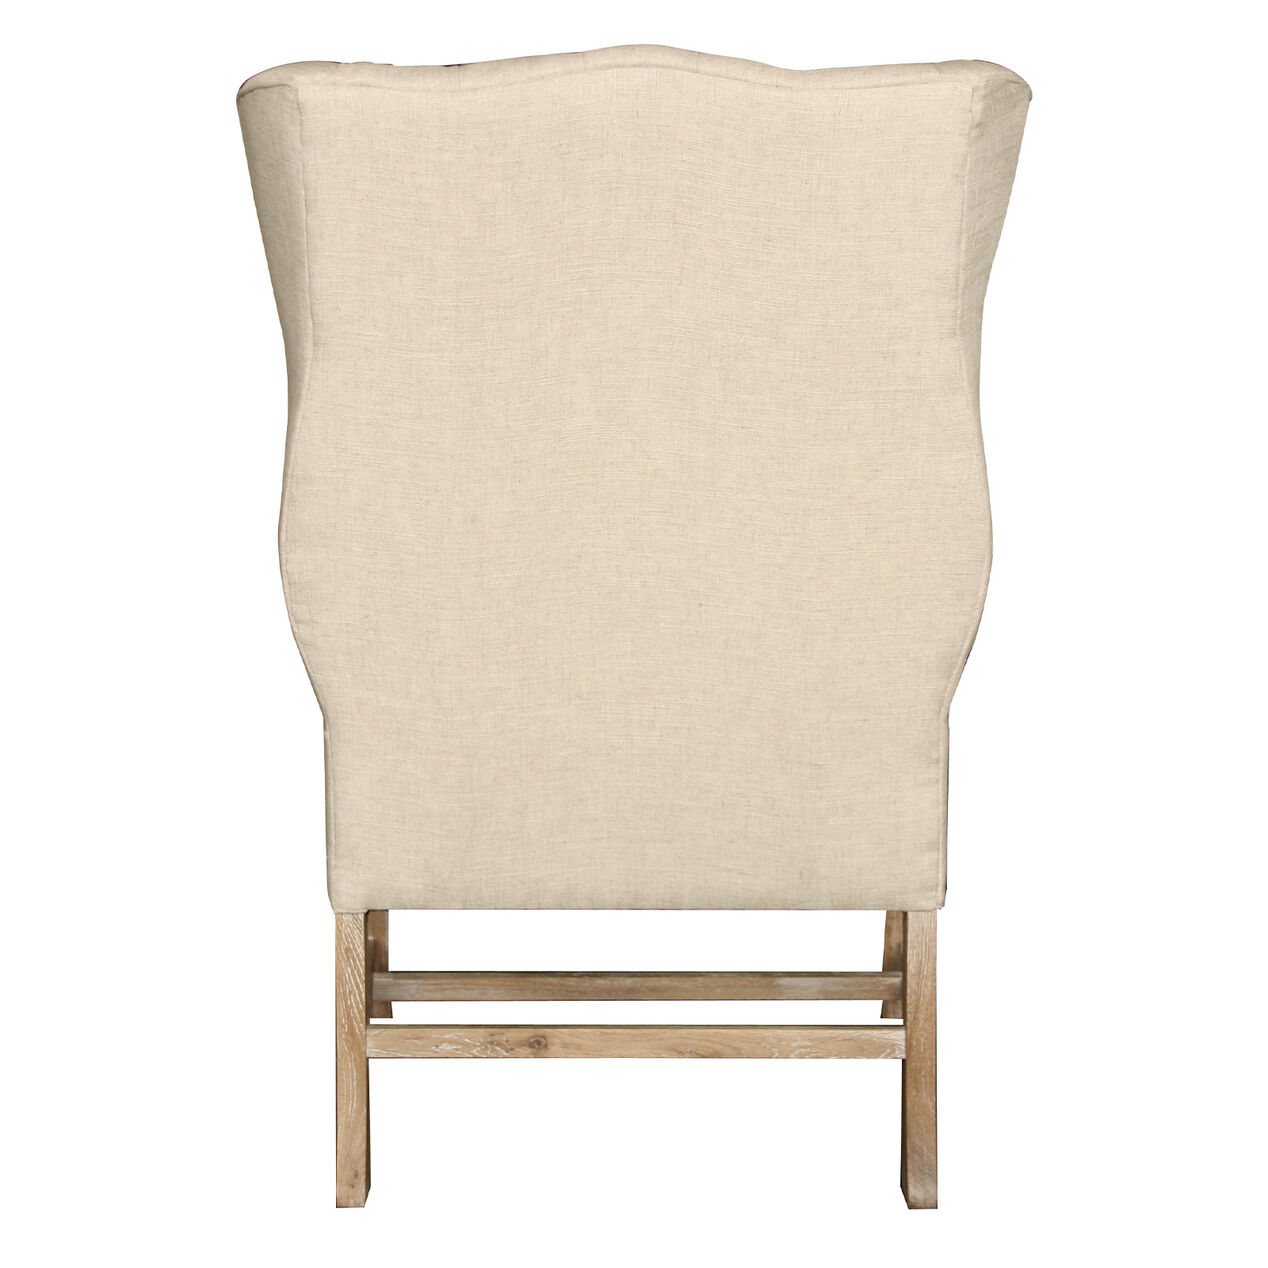 James tufted wingback accent chair at home Tufted accent chair